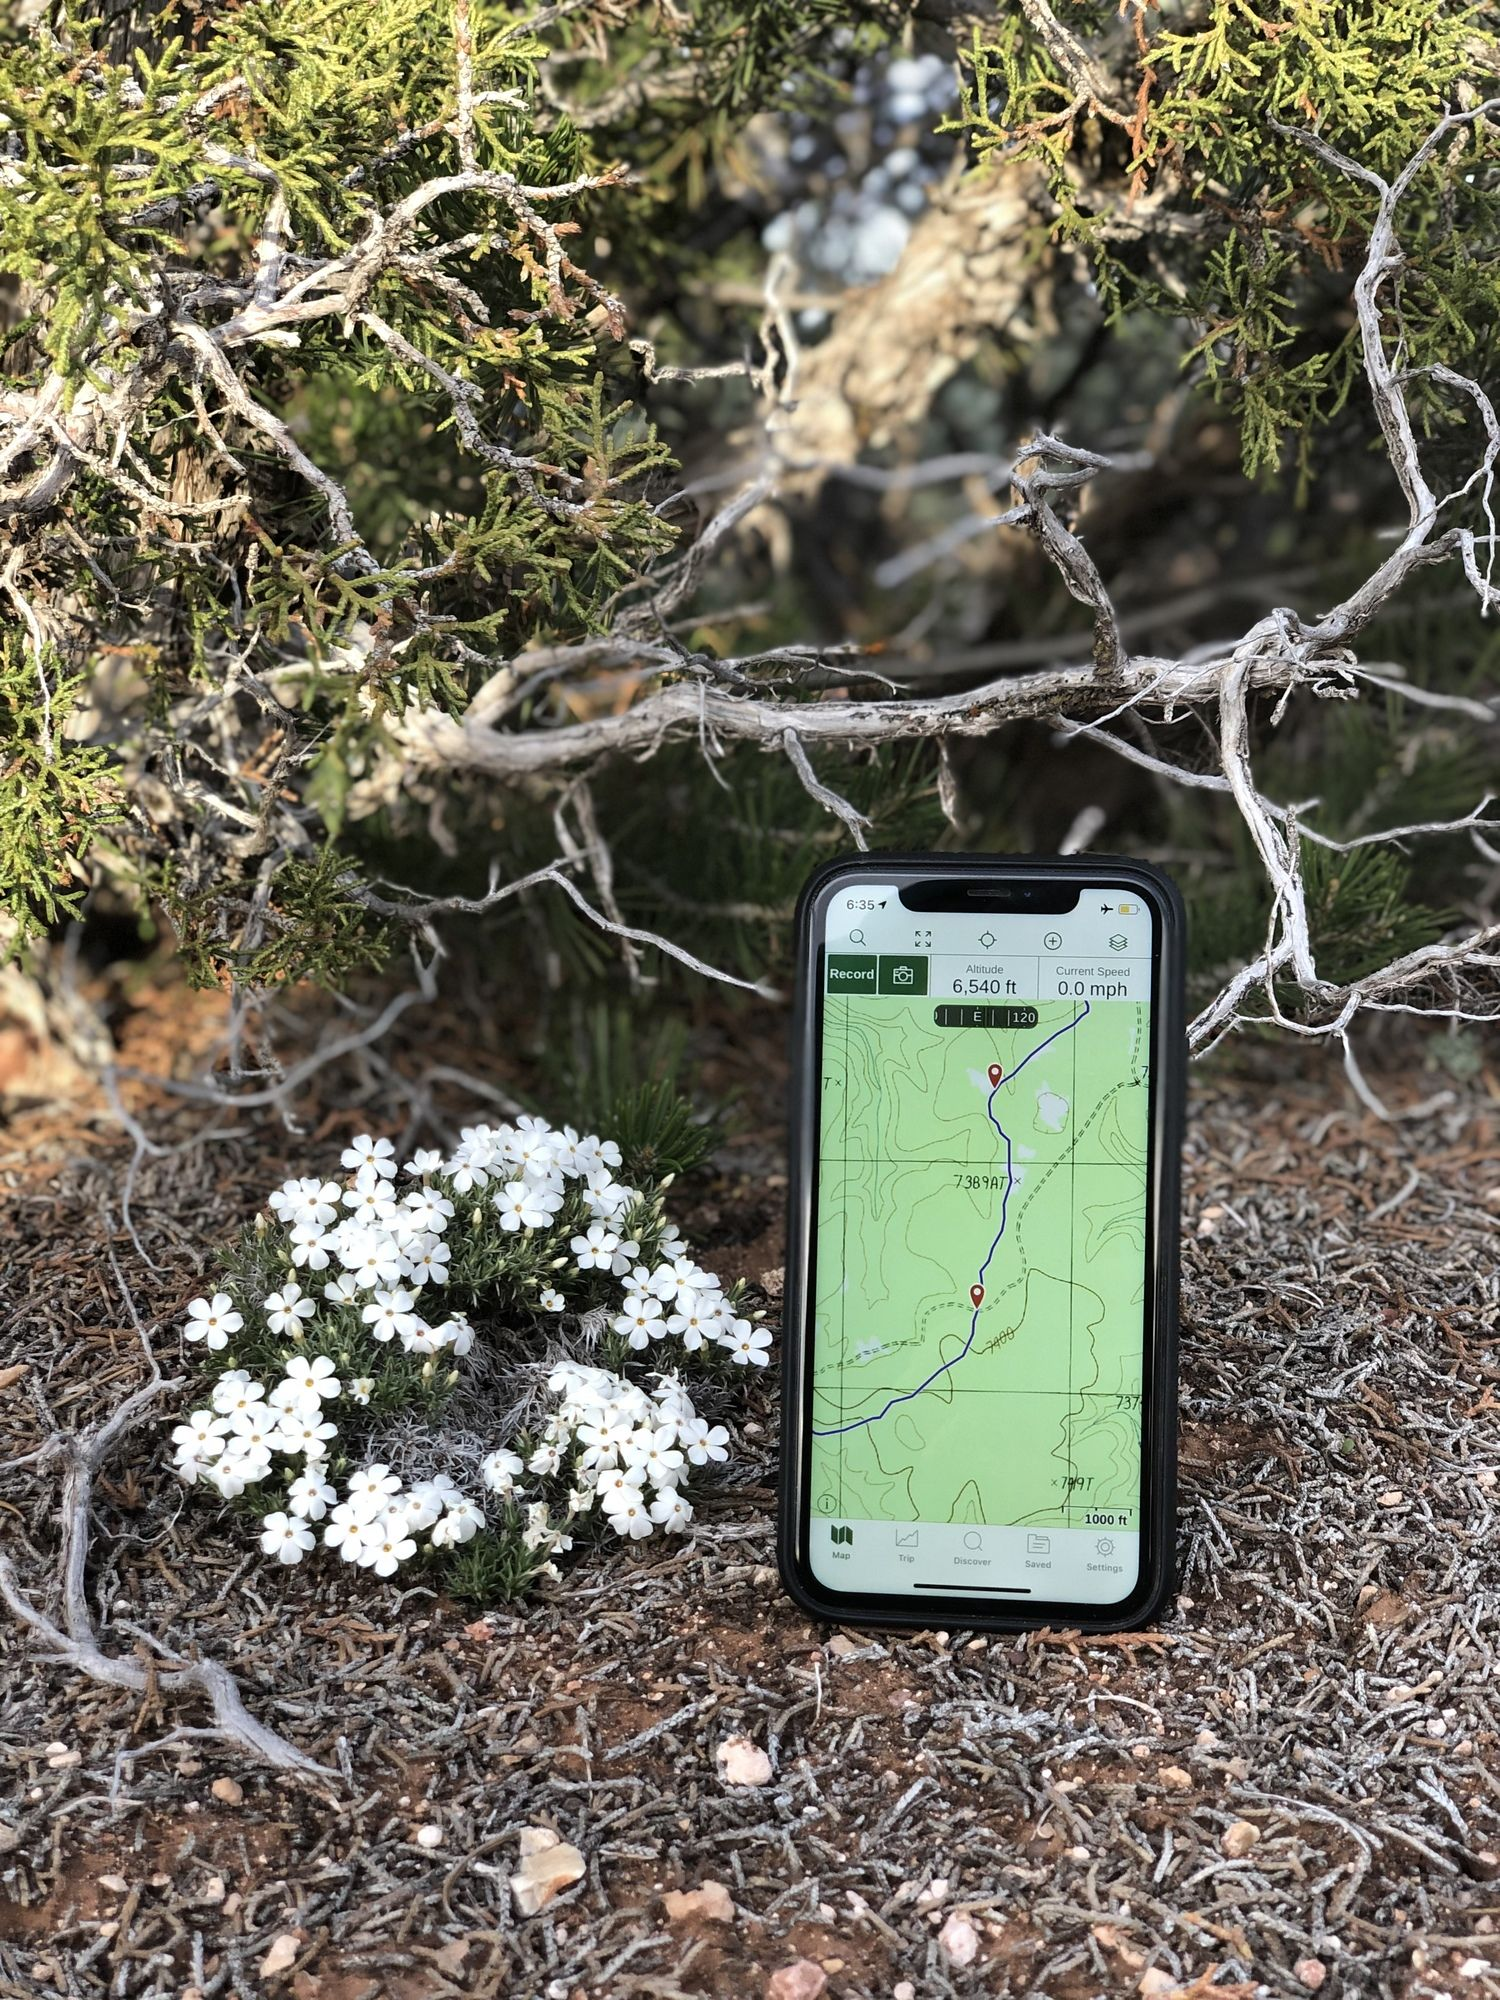 The iPhone has quickly become a useful gear item that most long distance hikers bring for taking photos, journaling, entertainment, and navigating on their adventures. Here it is shown with the Gaia GPS app.   Photo courtesy Naomi Hudetz